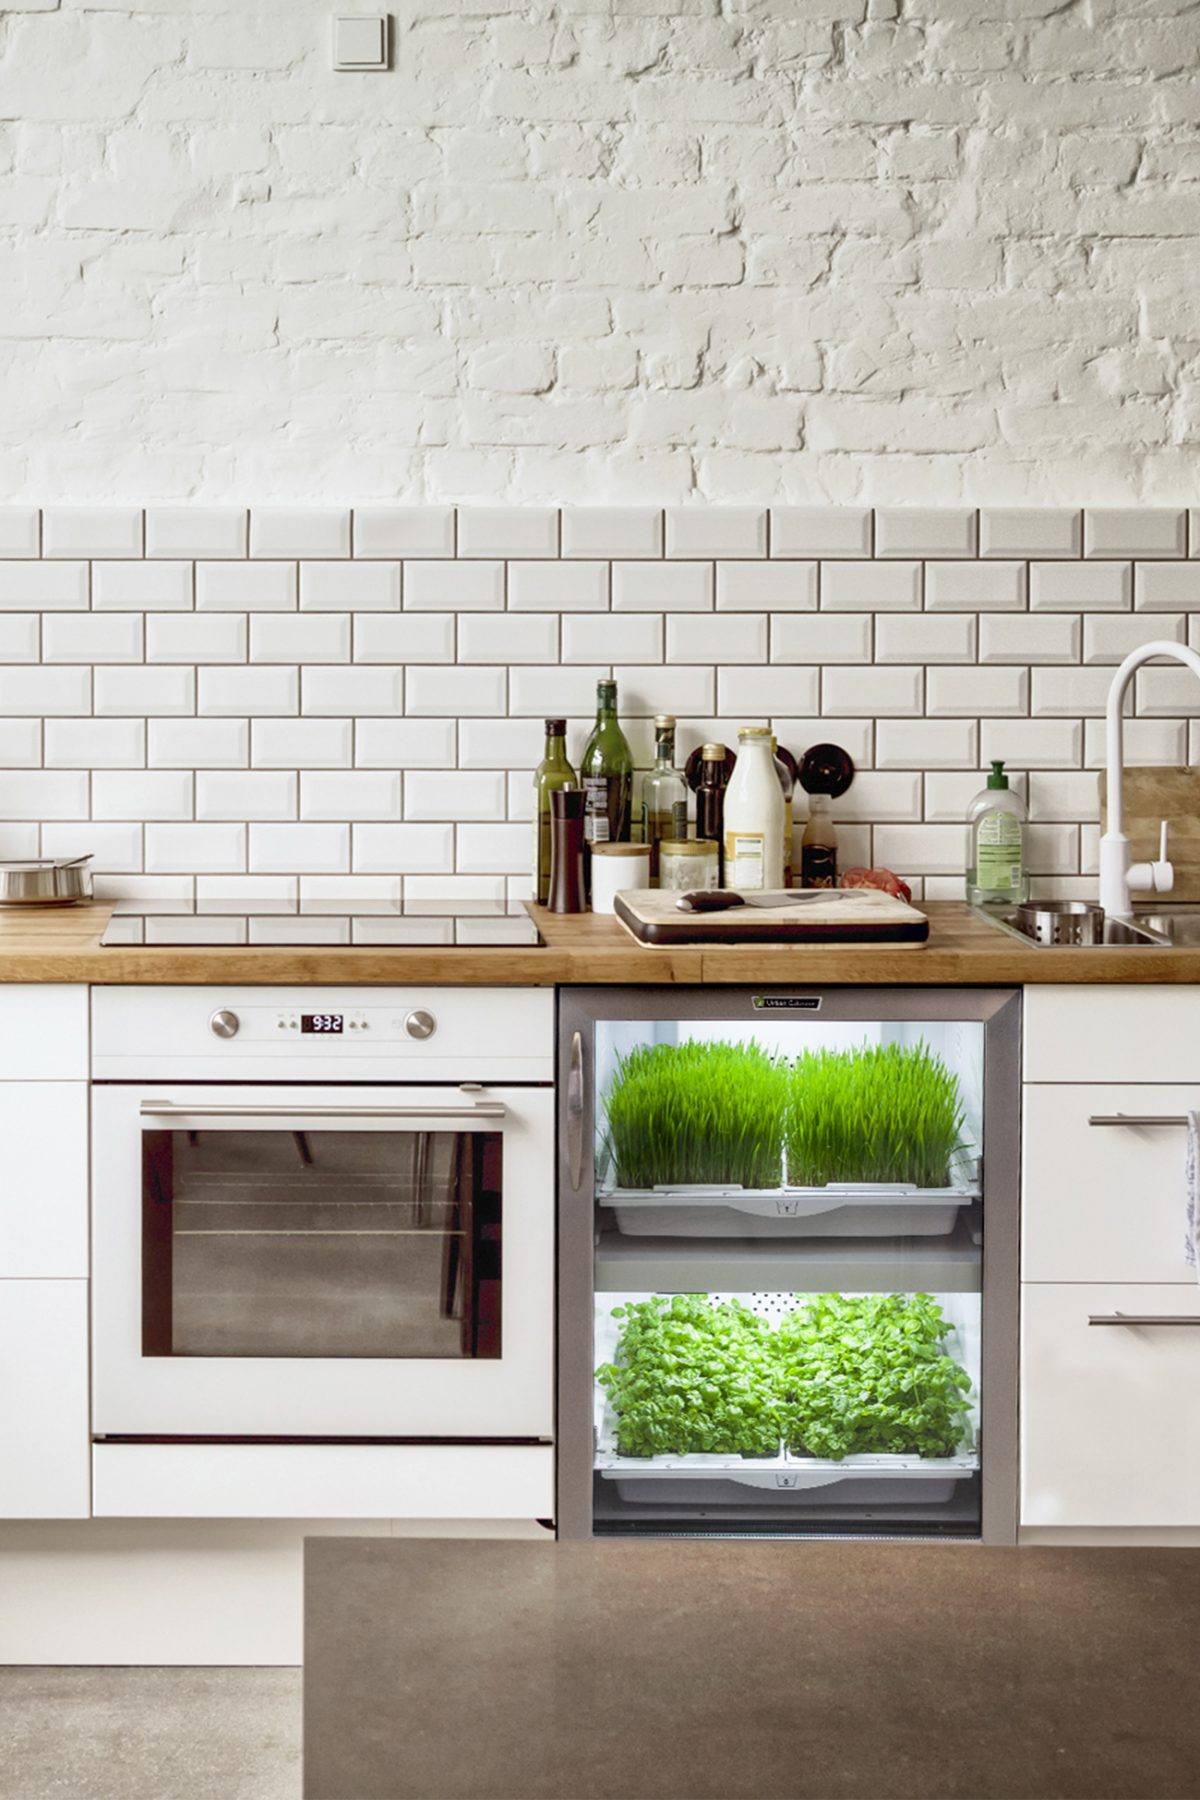 3 Tech Solutions to Growing Herbs and Veggies at Home | Carley K.